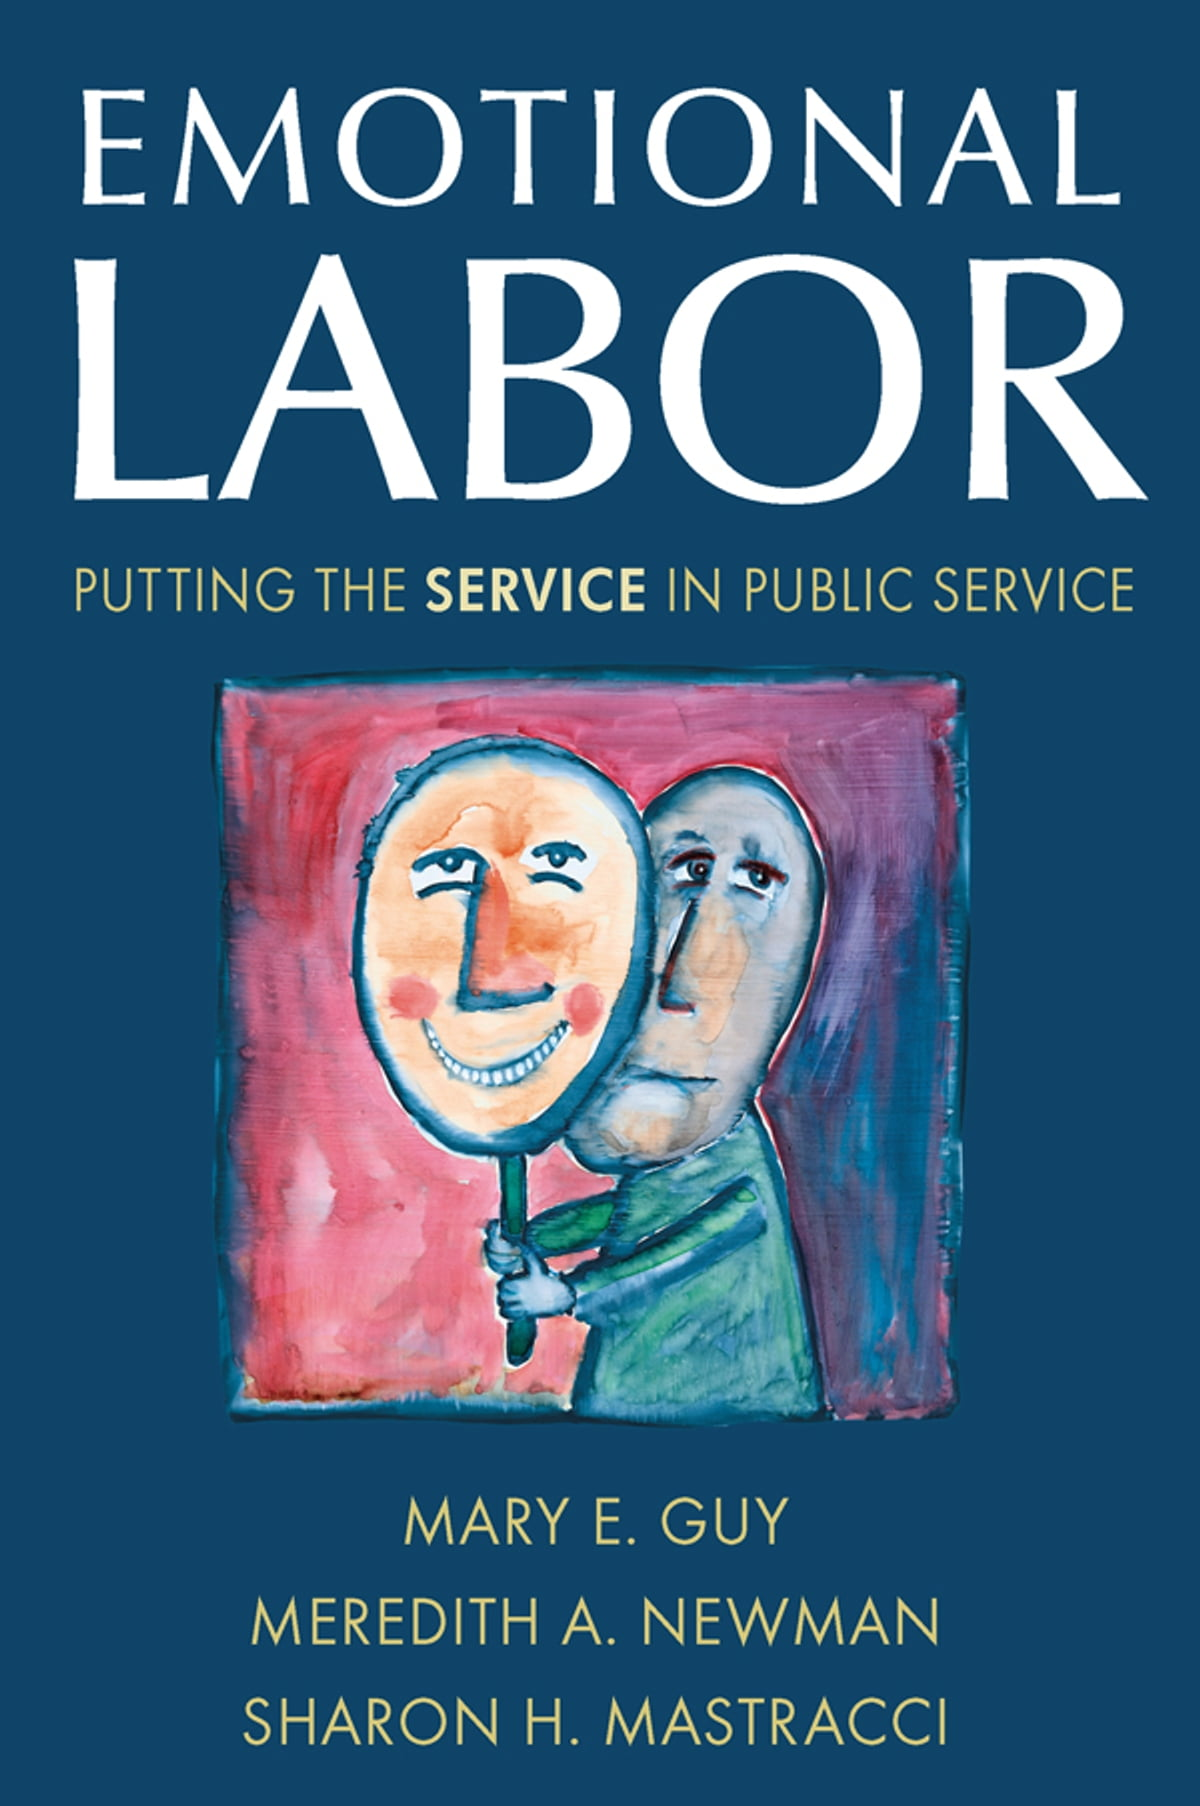 Emotional Labor: Putting the Service in Public Service eBook by Mary E. Guy  - 9781317472094 | Rakuten Kobo